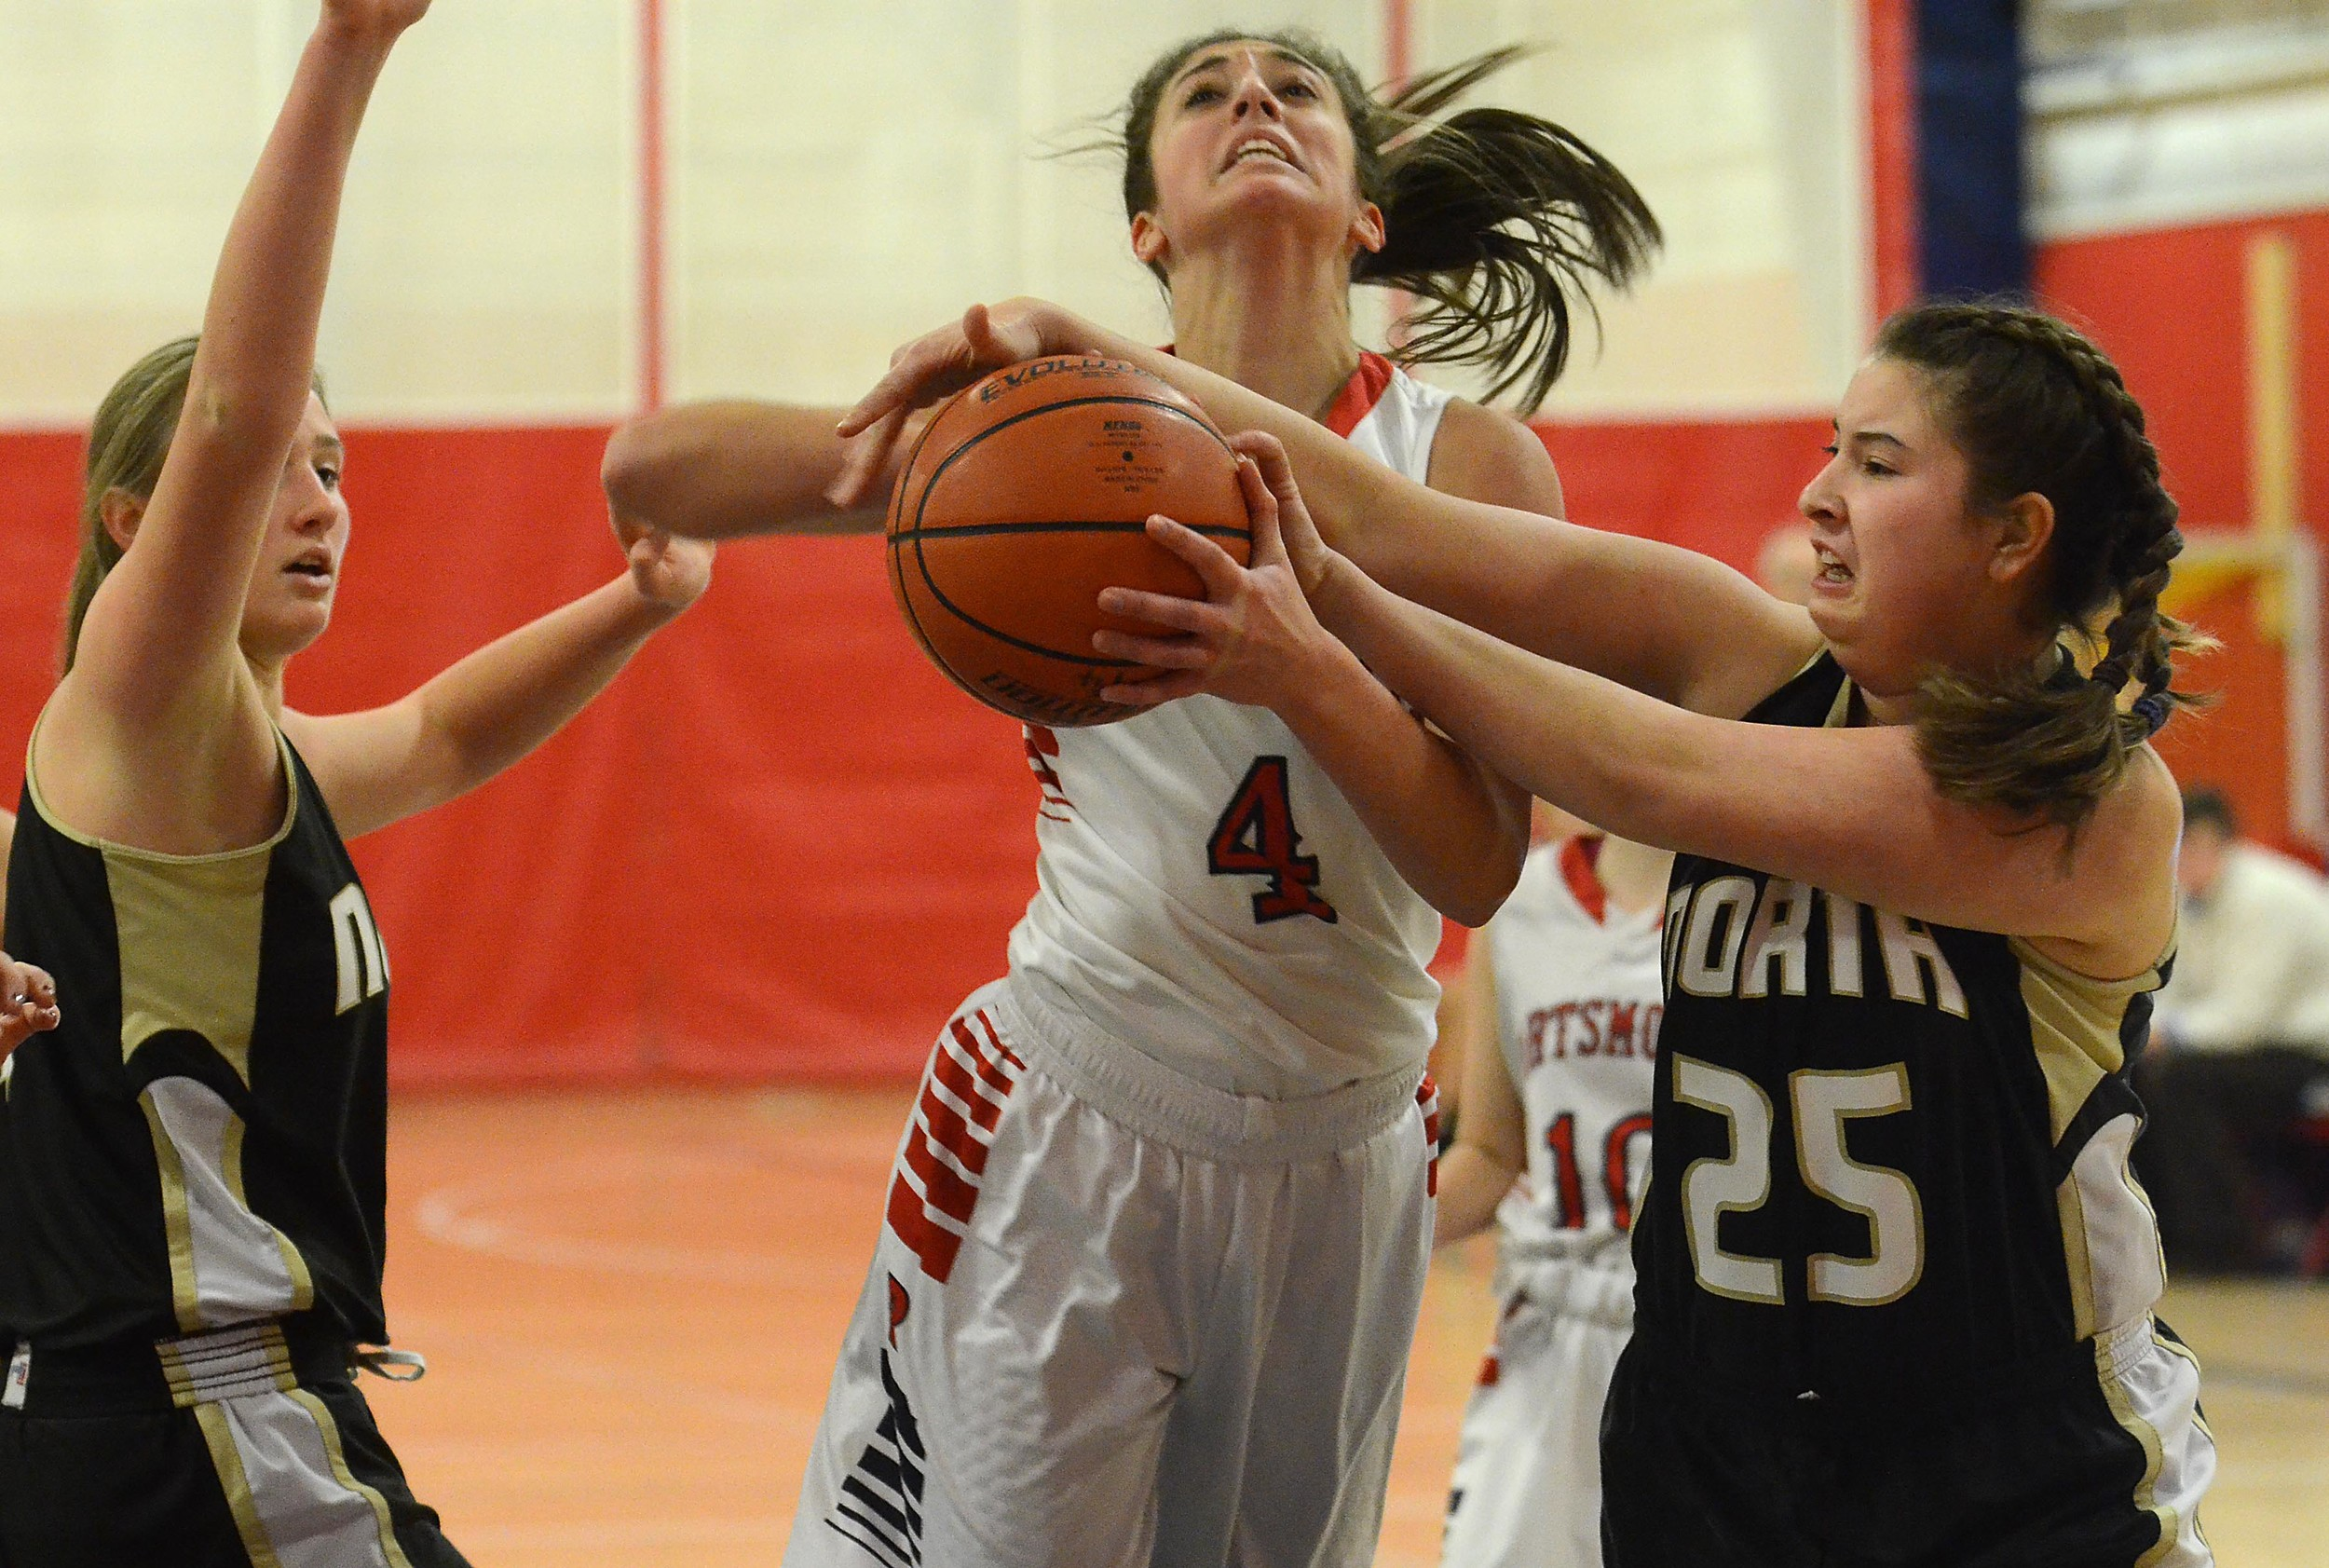 Haley Alves drives the lane.